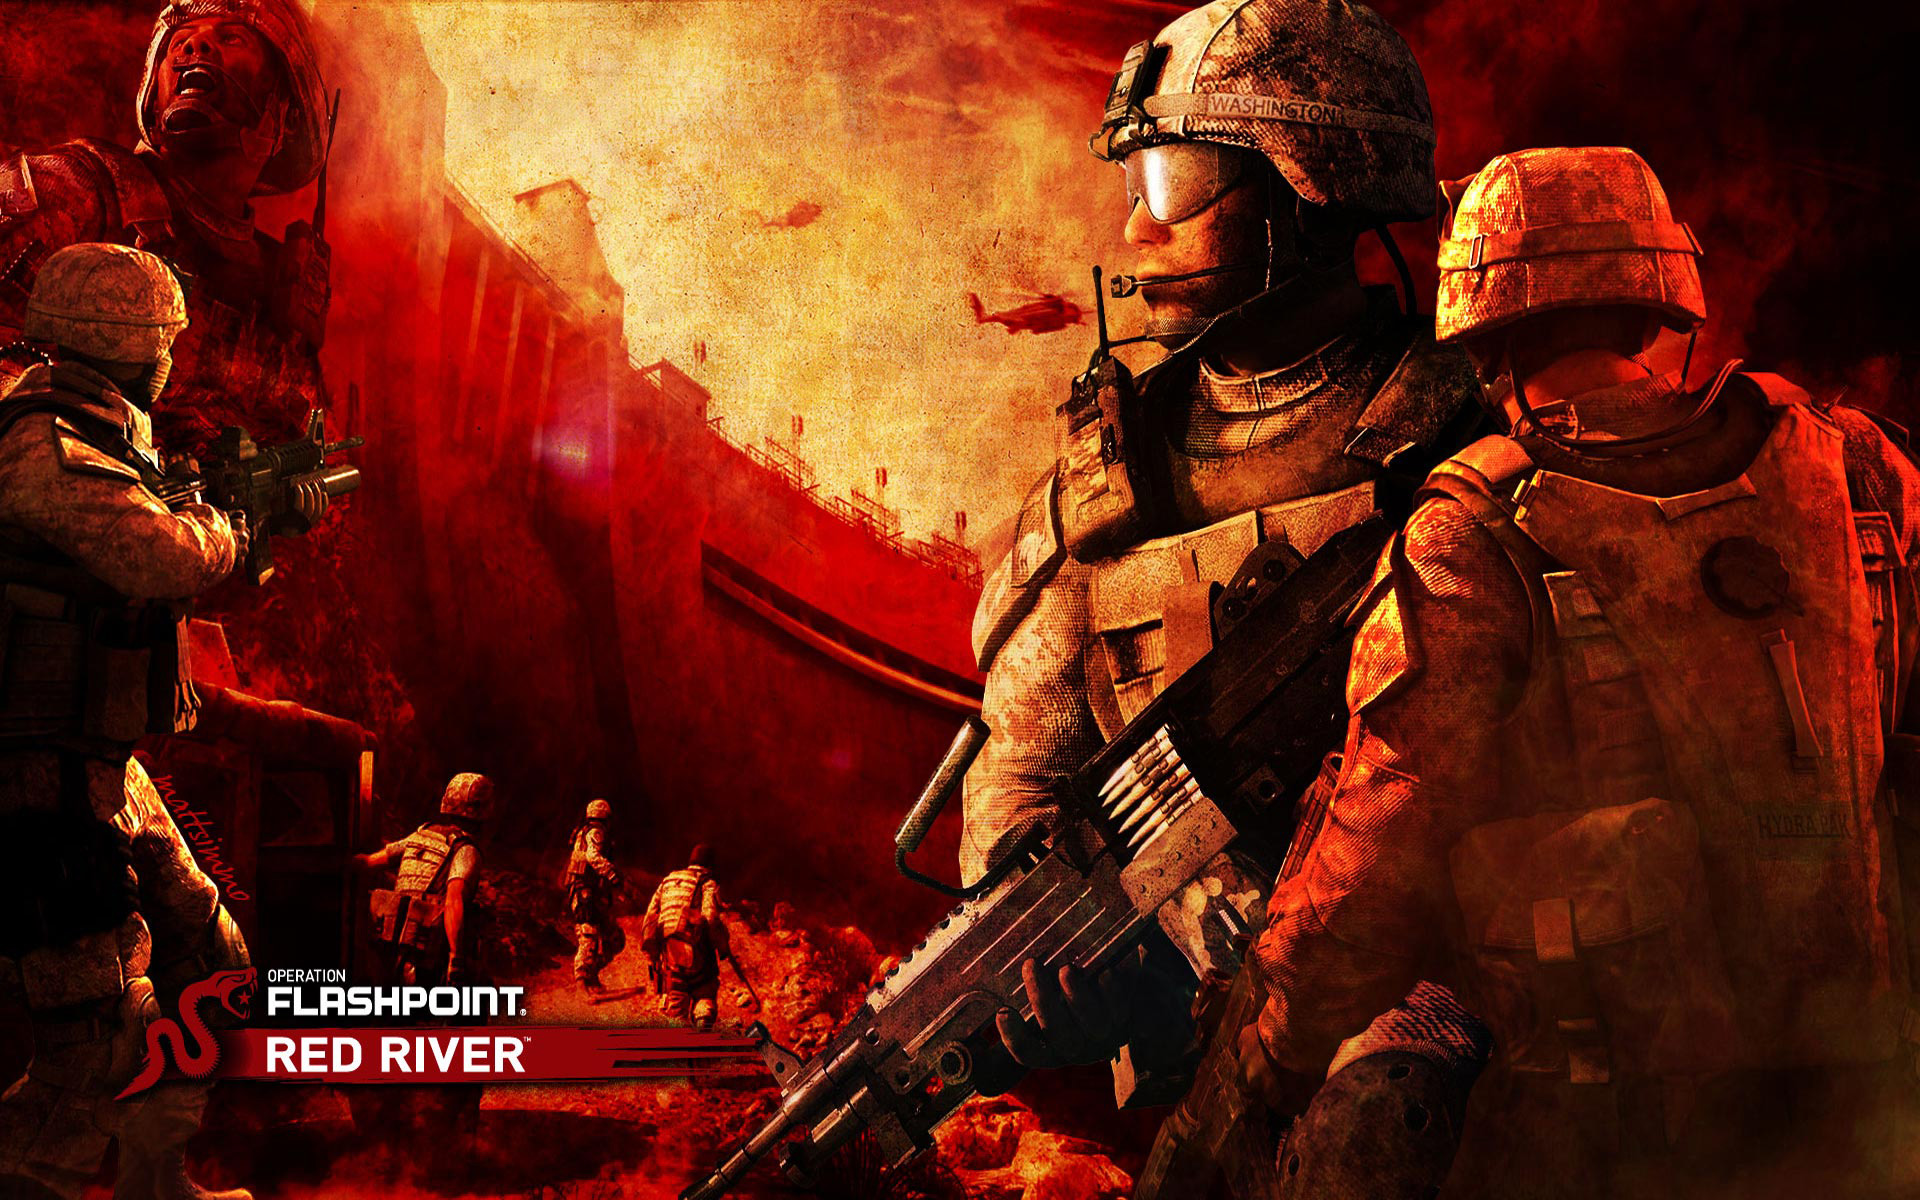 Operation Flashpoint: Red River Wallpaper in 1920x1200